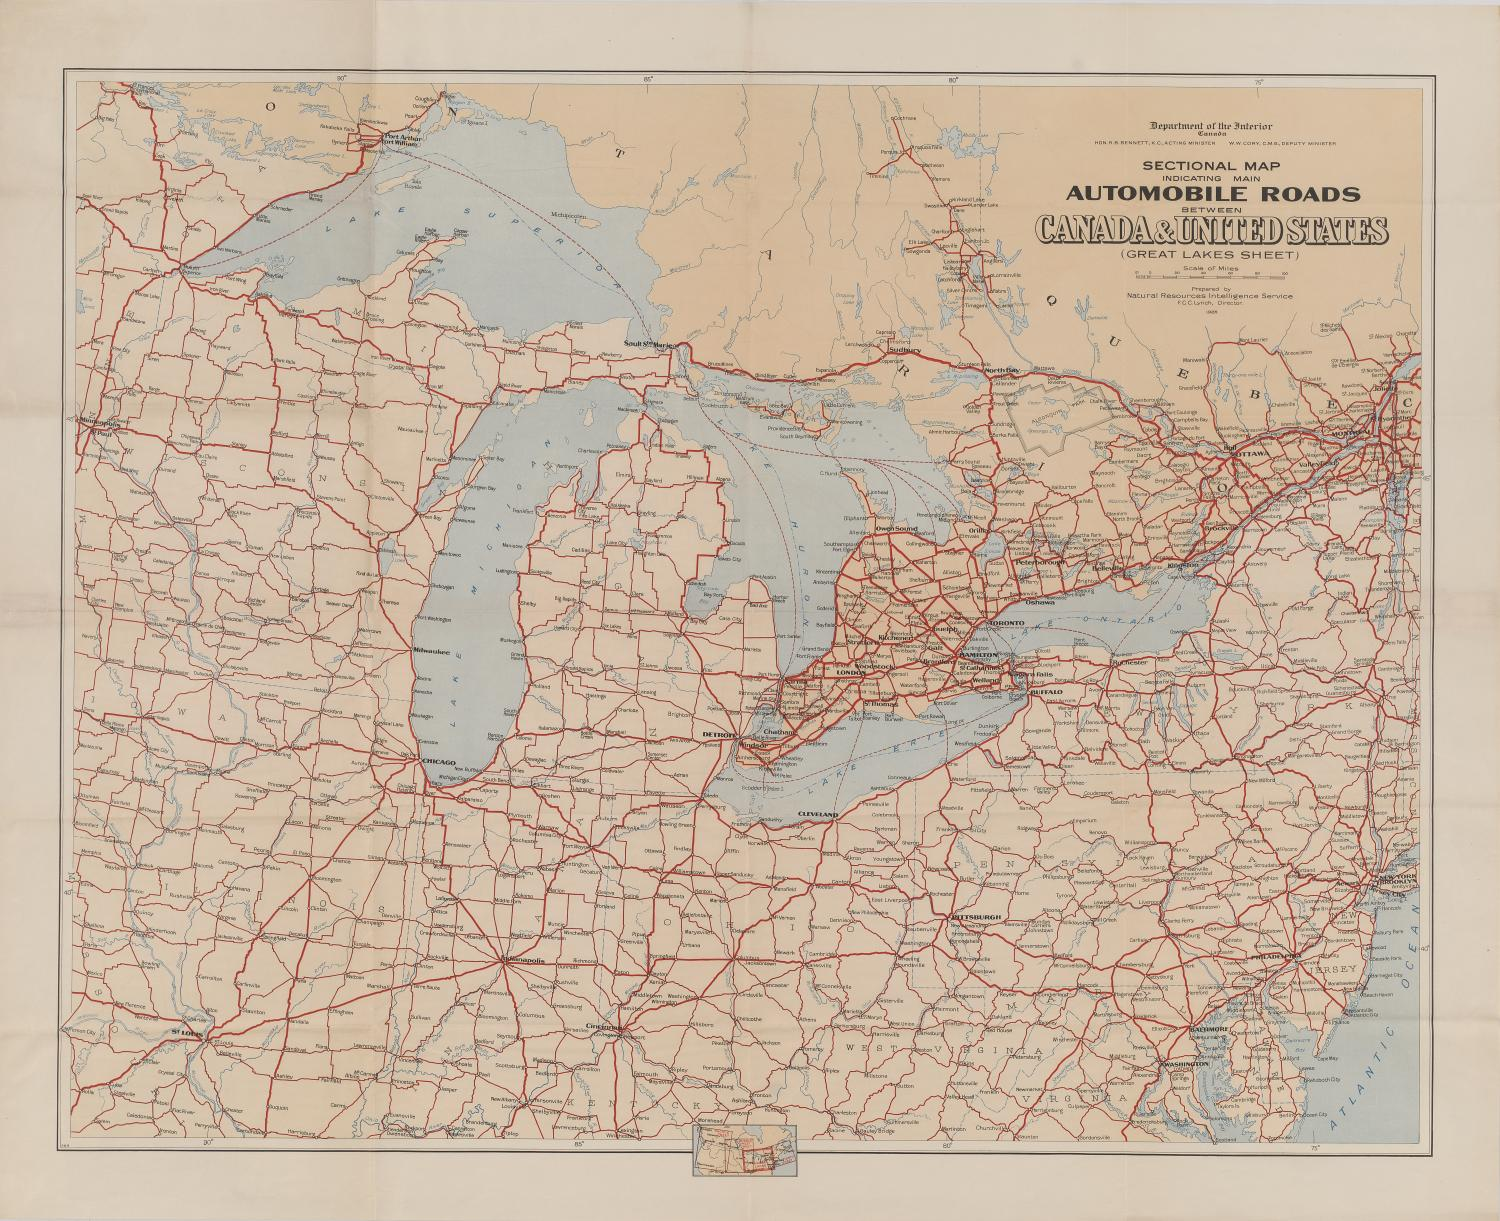 Sectional Map indicating main Automobile Roads between ...